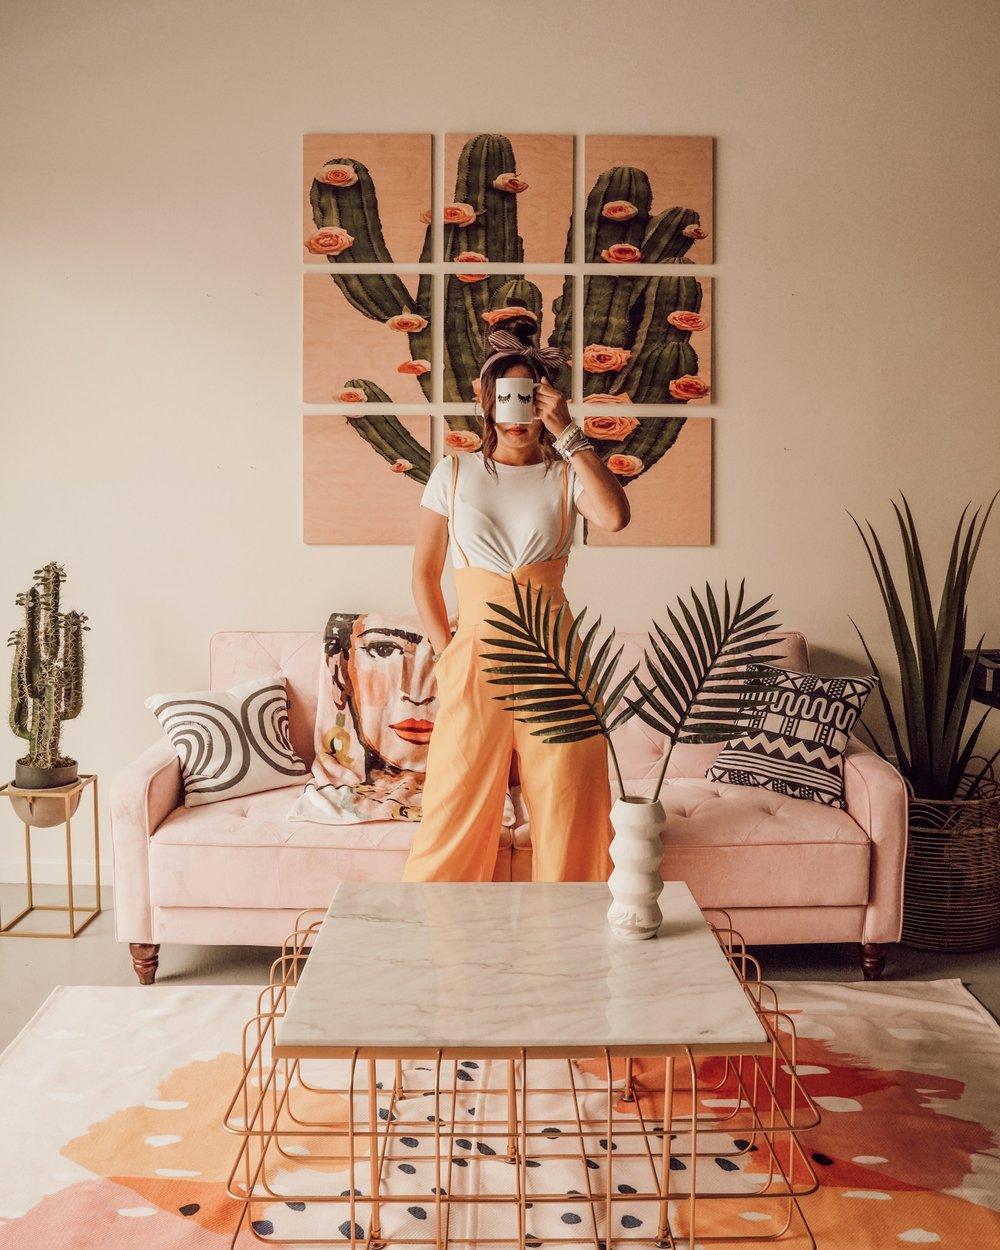 5 Ways to Create a Cozy Space - With the help of Society6, the incredible decor company that supports talented artists and prints their designs on tens of thousands of products, I decided to remake my entire living room! The results were absolutely stunning. Just take a look!